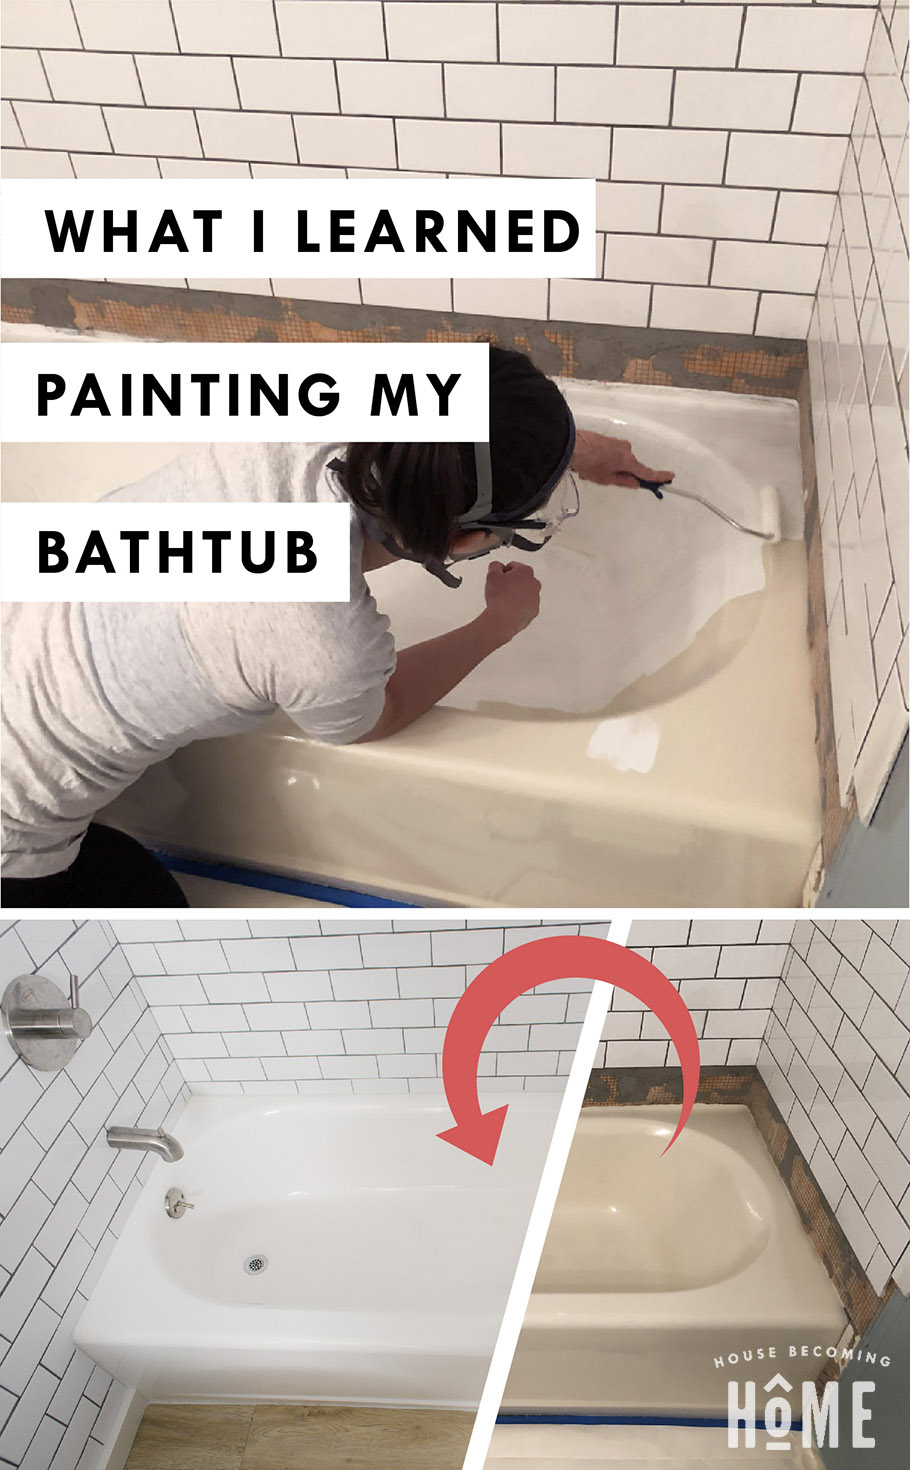 What I Learned Painting my Bathtub. Six tips for refreshing an outdated bathtub with a simple tub and tile kit